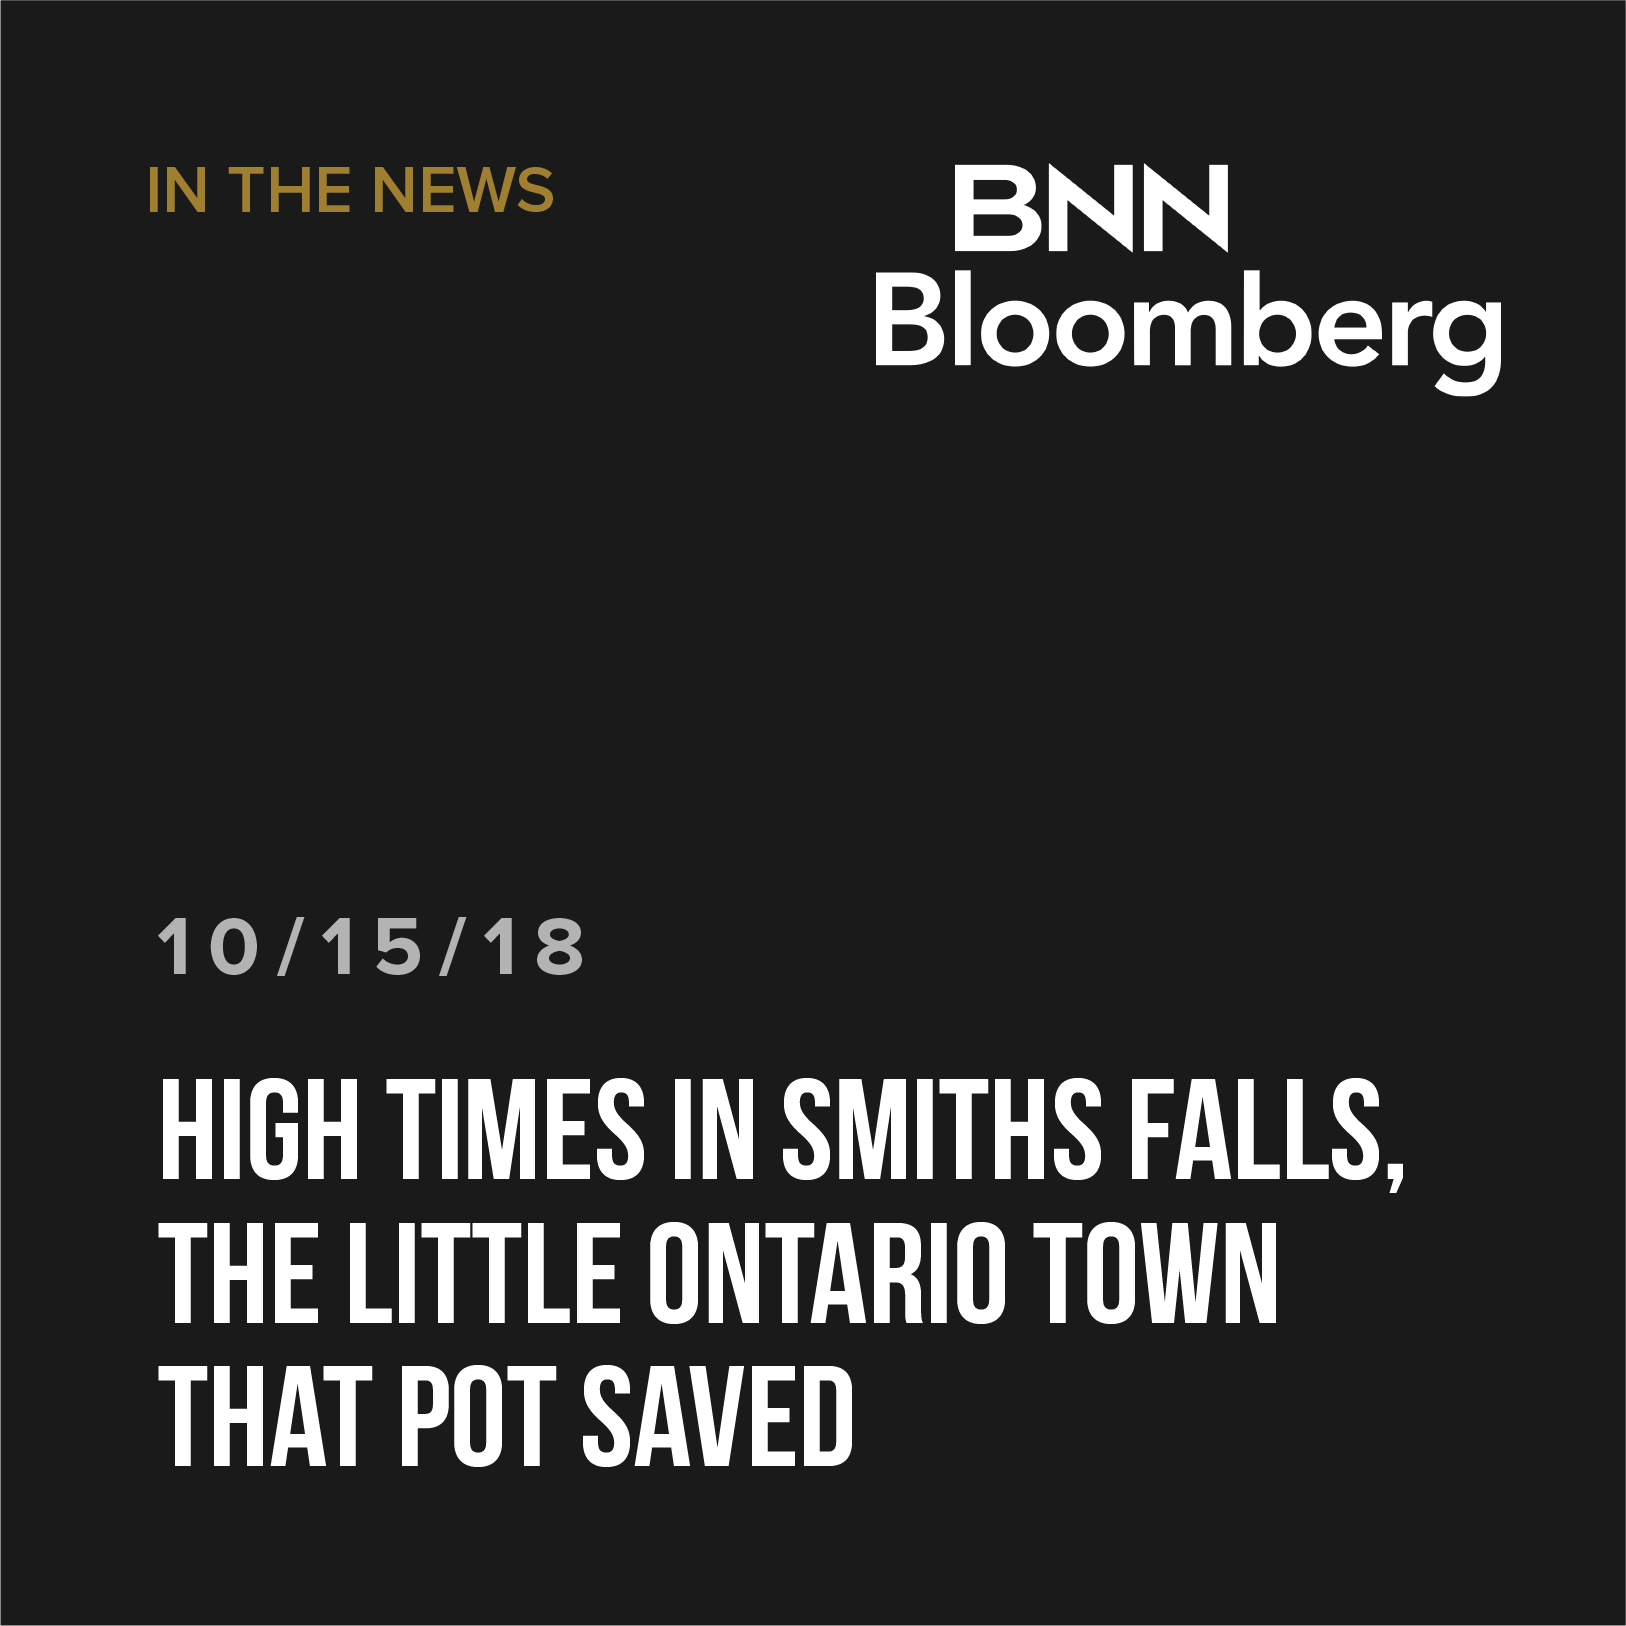 High times in Smiths Falls, the little Ontario town that pot saved